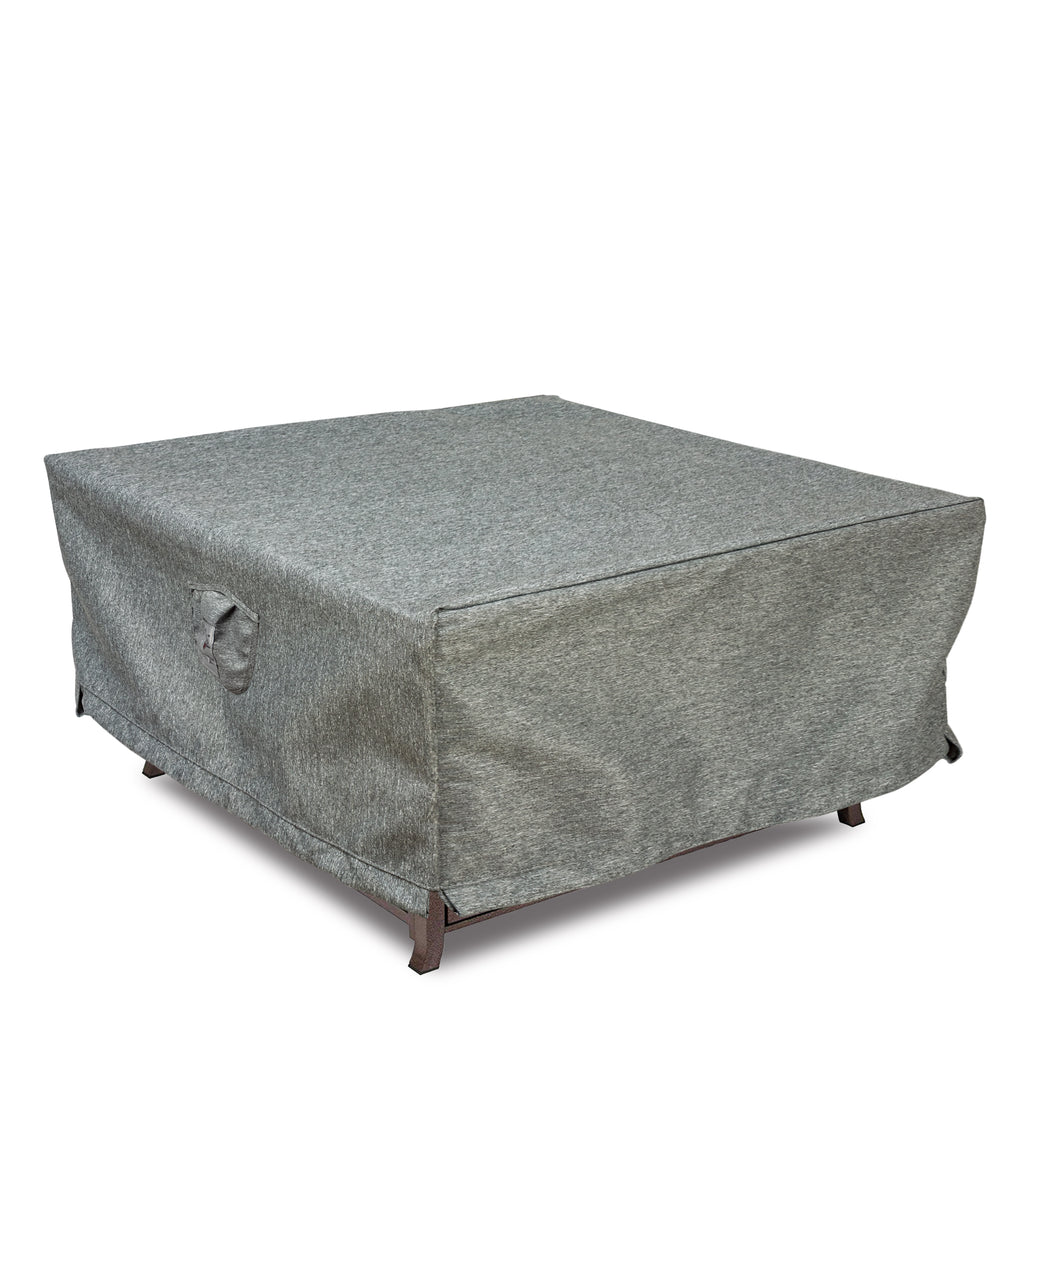 Fire Table Cover Square - 44